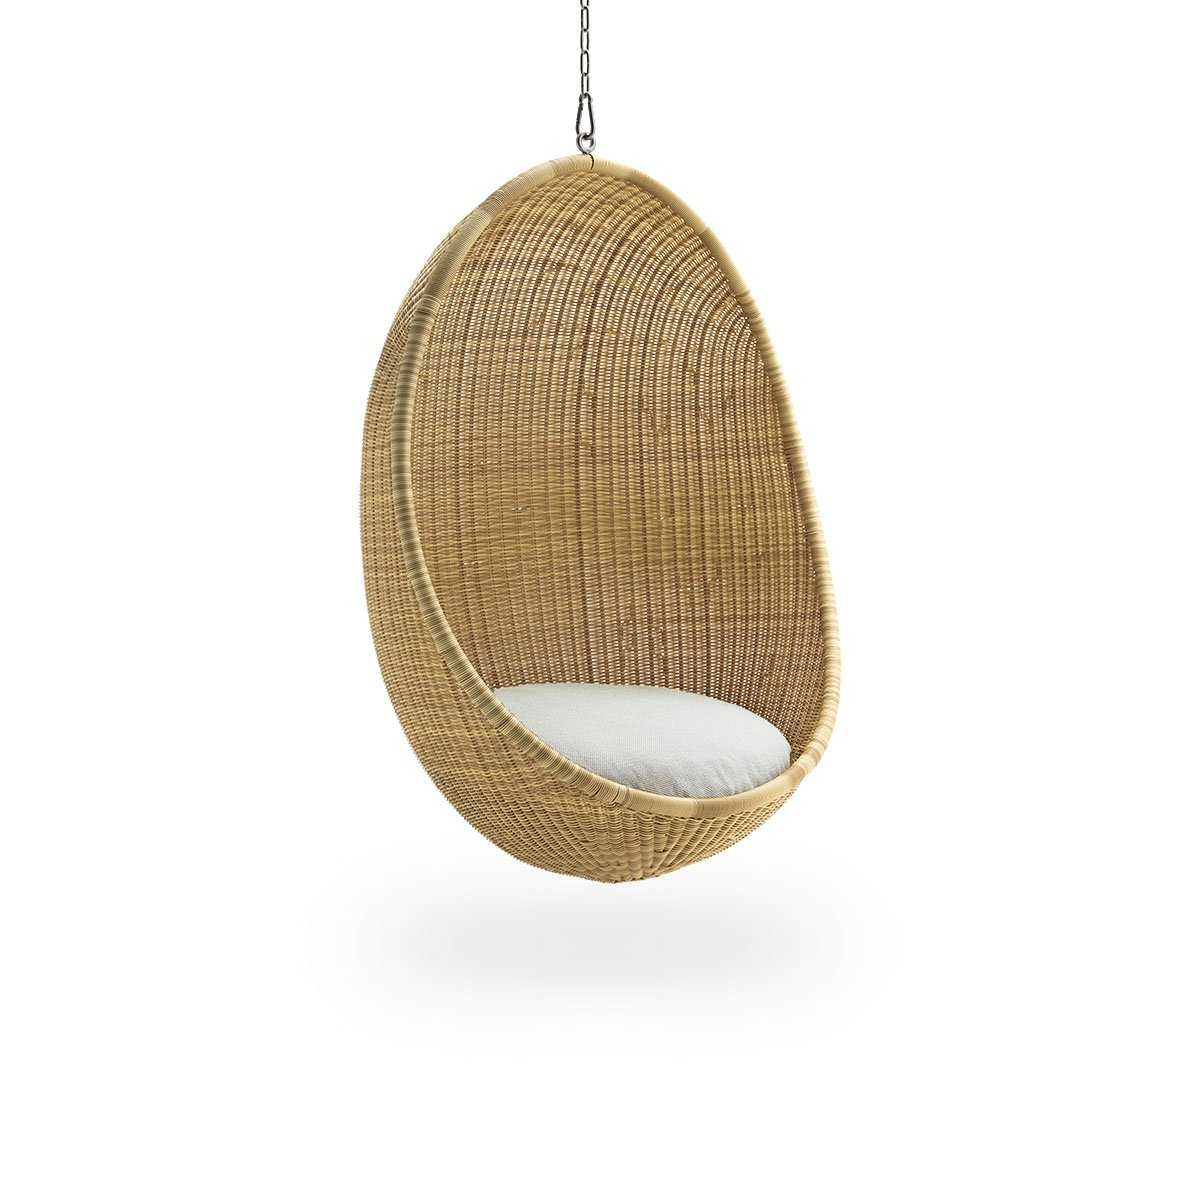 Sika Design Lounge-Sessel Hanging Egg Natur